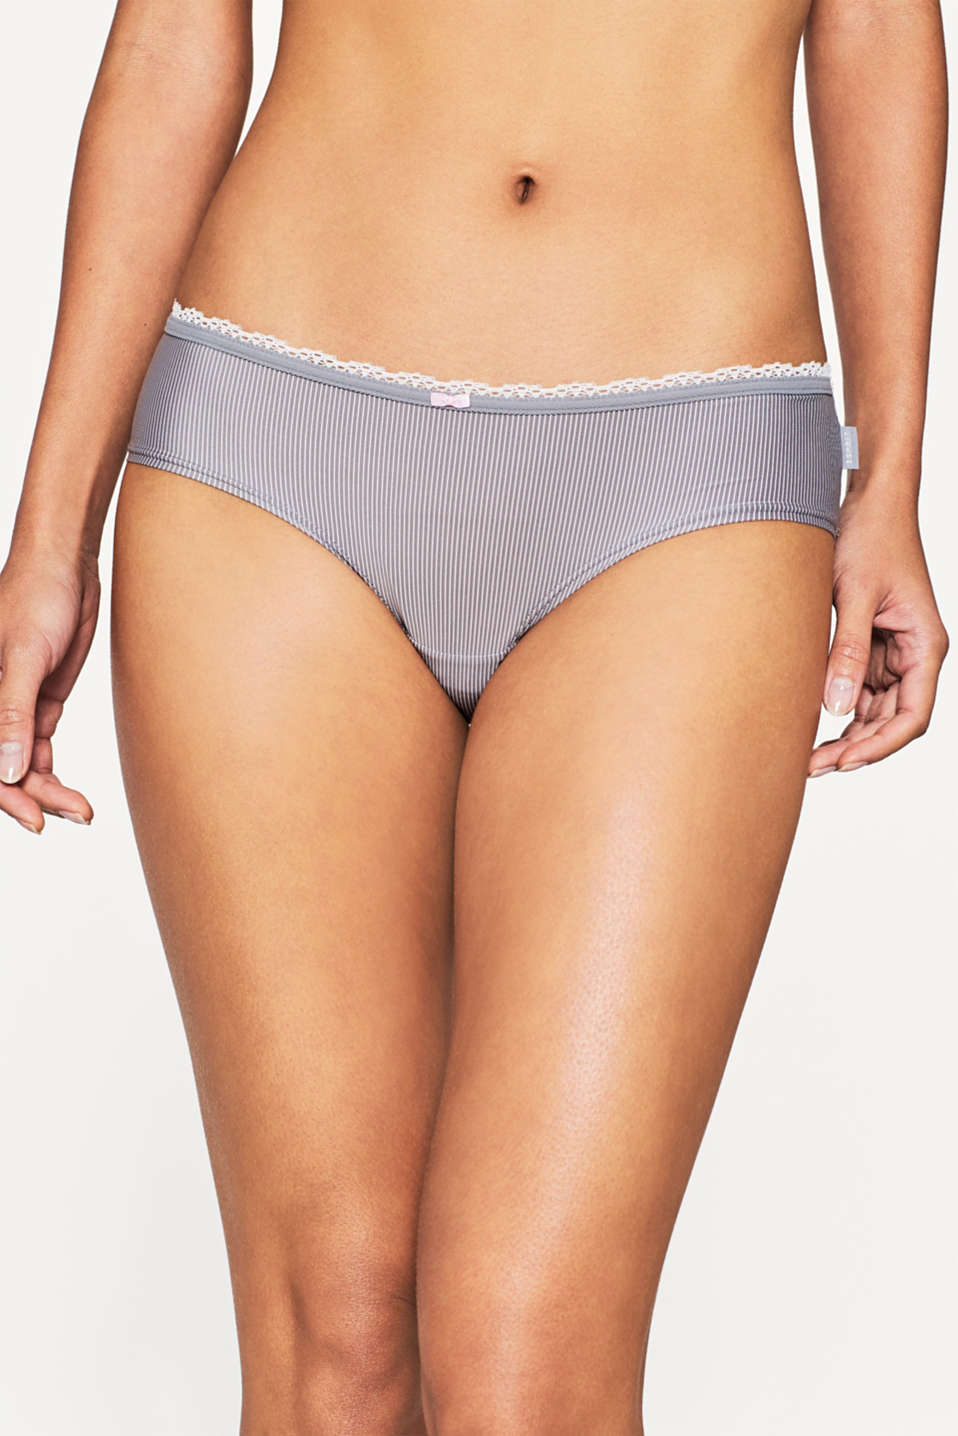 Esprit - Silky hipster briefs with stripes and lace